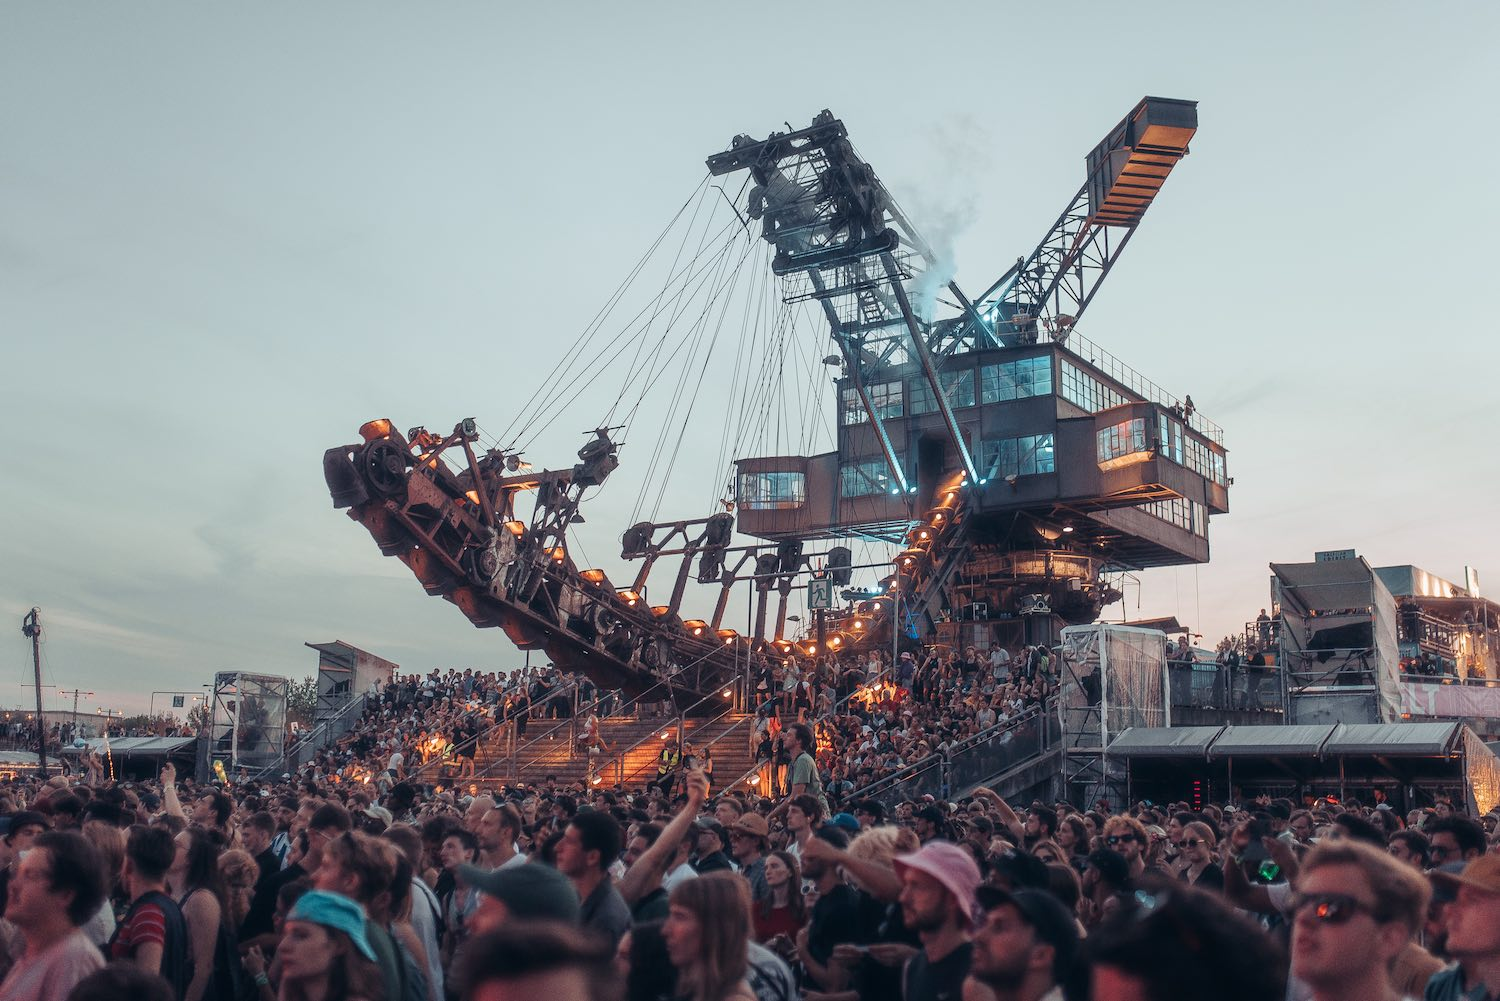 Melt Festival - Best Festivals in Europe 2020